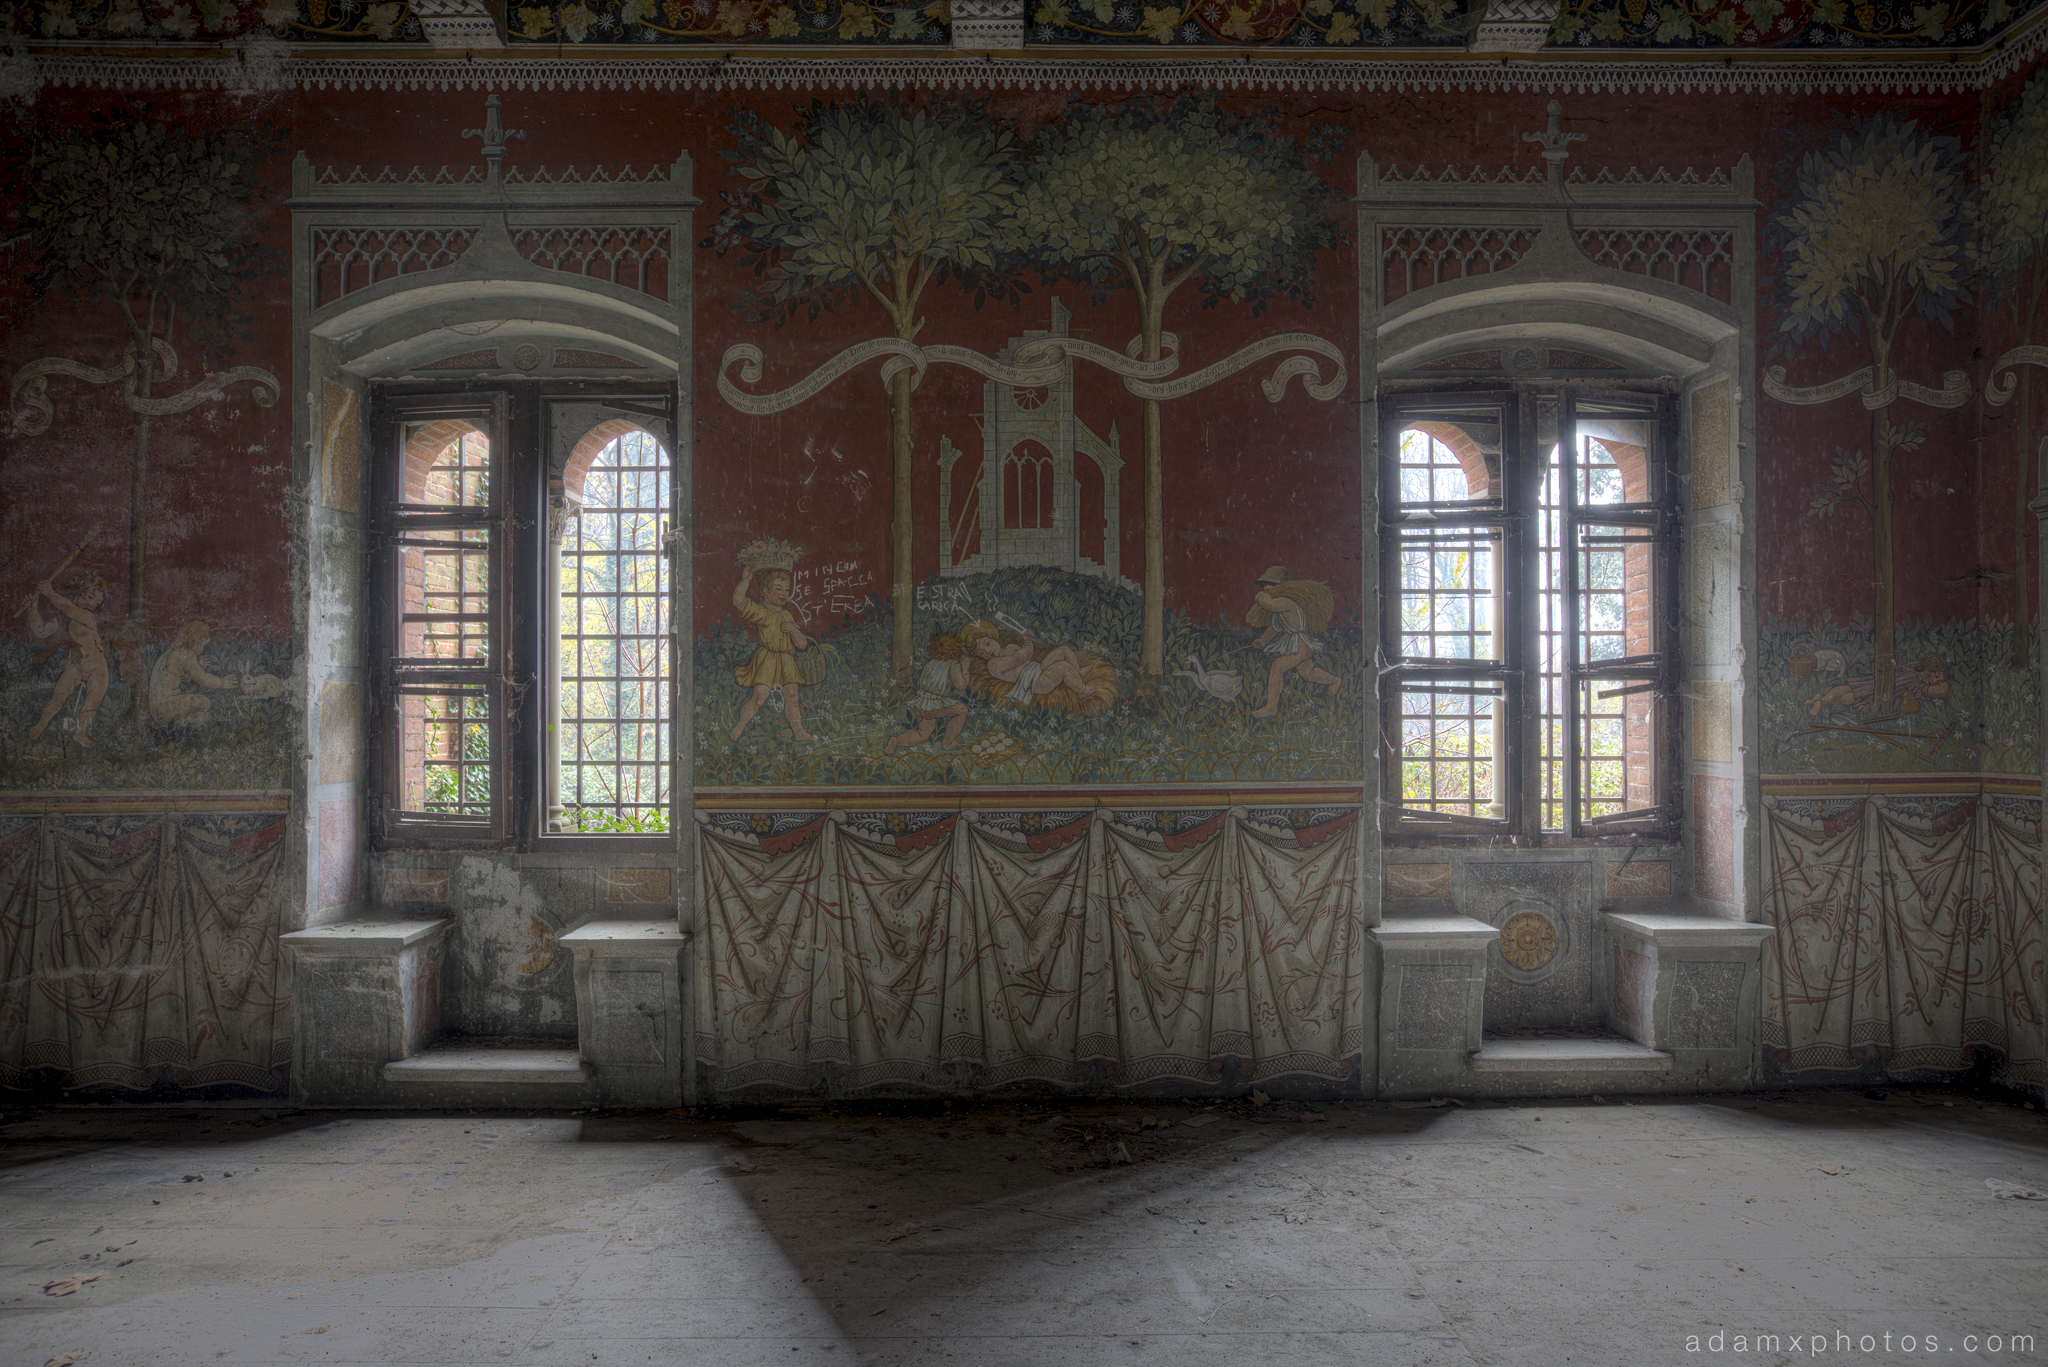 Explore 113 castello di r italy november 2014 adam x castello di r italy castle urbex adam x urban exploration dining hall painted wall mural fresco amipublicfo Image collections